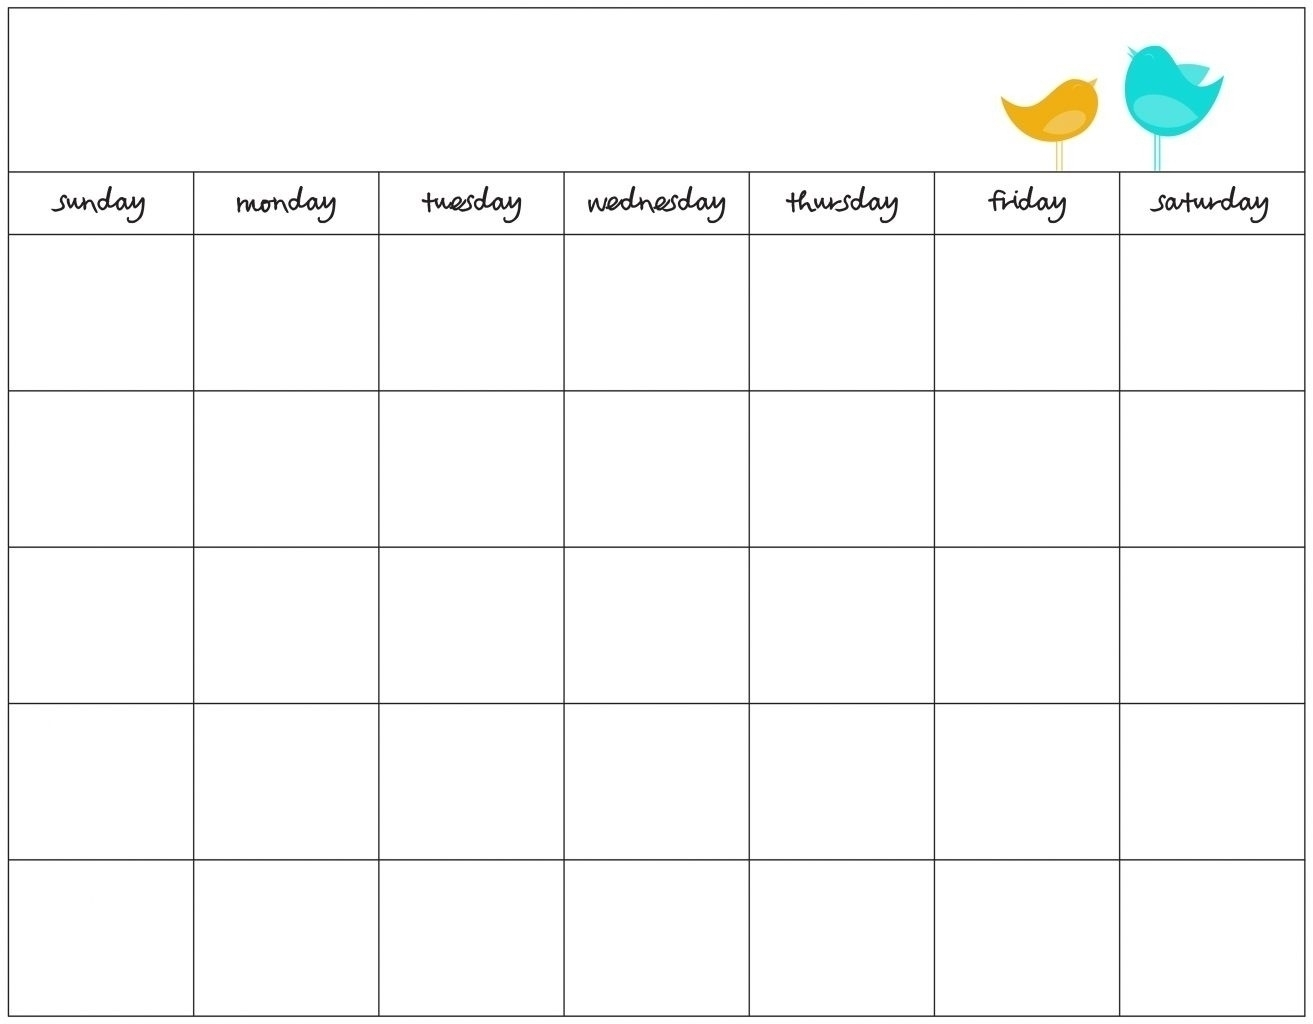 Seven Day Calendar E Week Printable Schedule Grid Es | Smorad regarding Blank 7 Day Calendar To Print